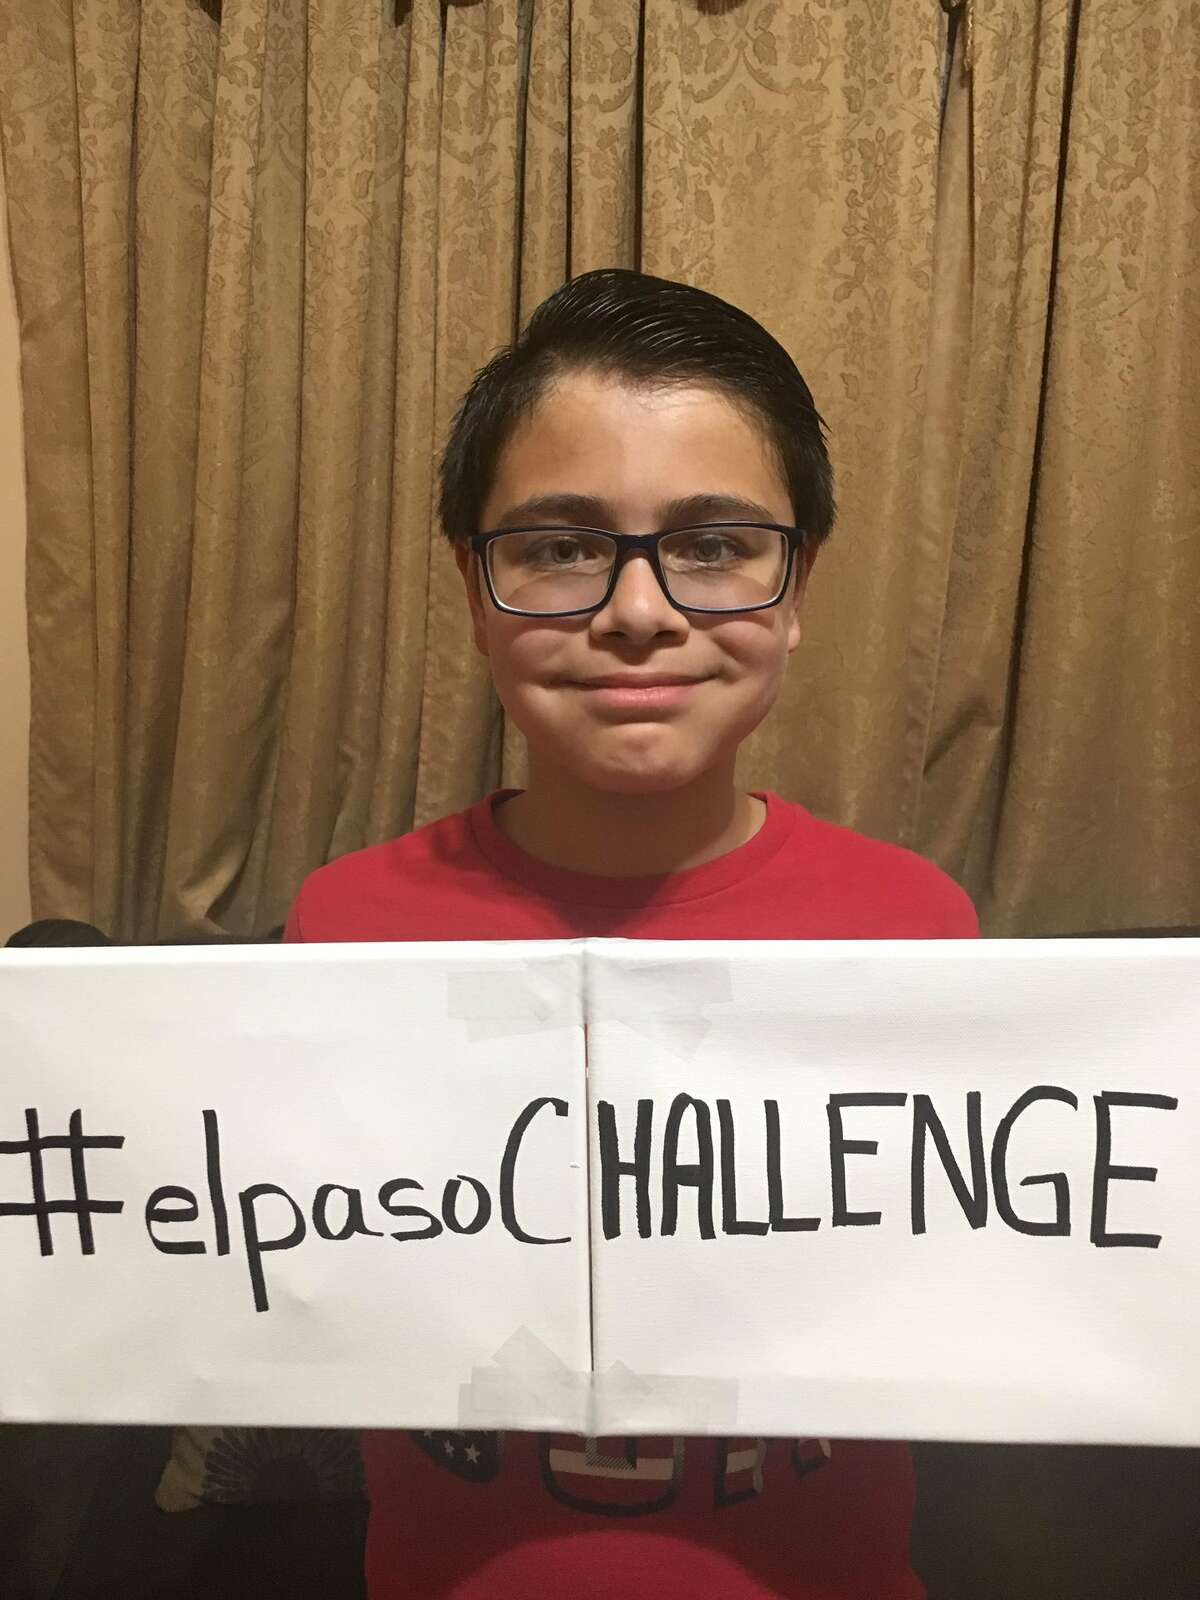 11-year-old Ruben Martinez came-up with #elpasoCHALLENGE to honor the victims of the city's mass shooting.